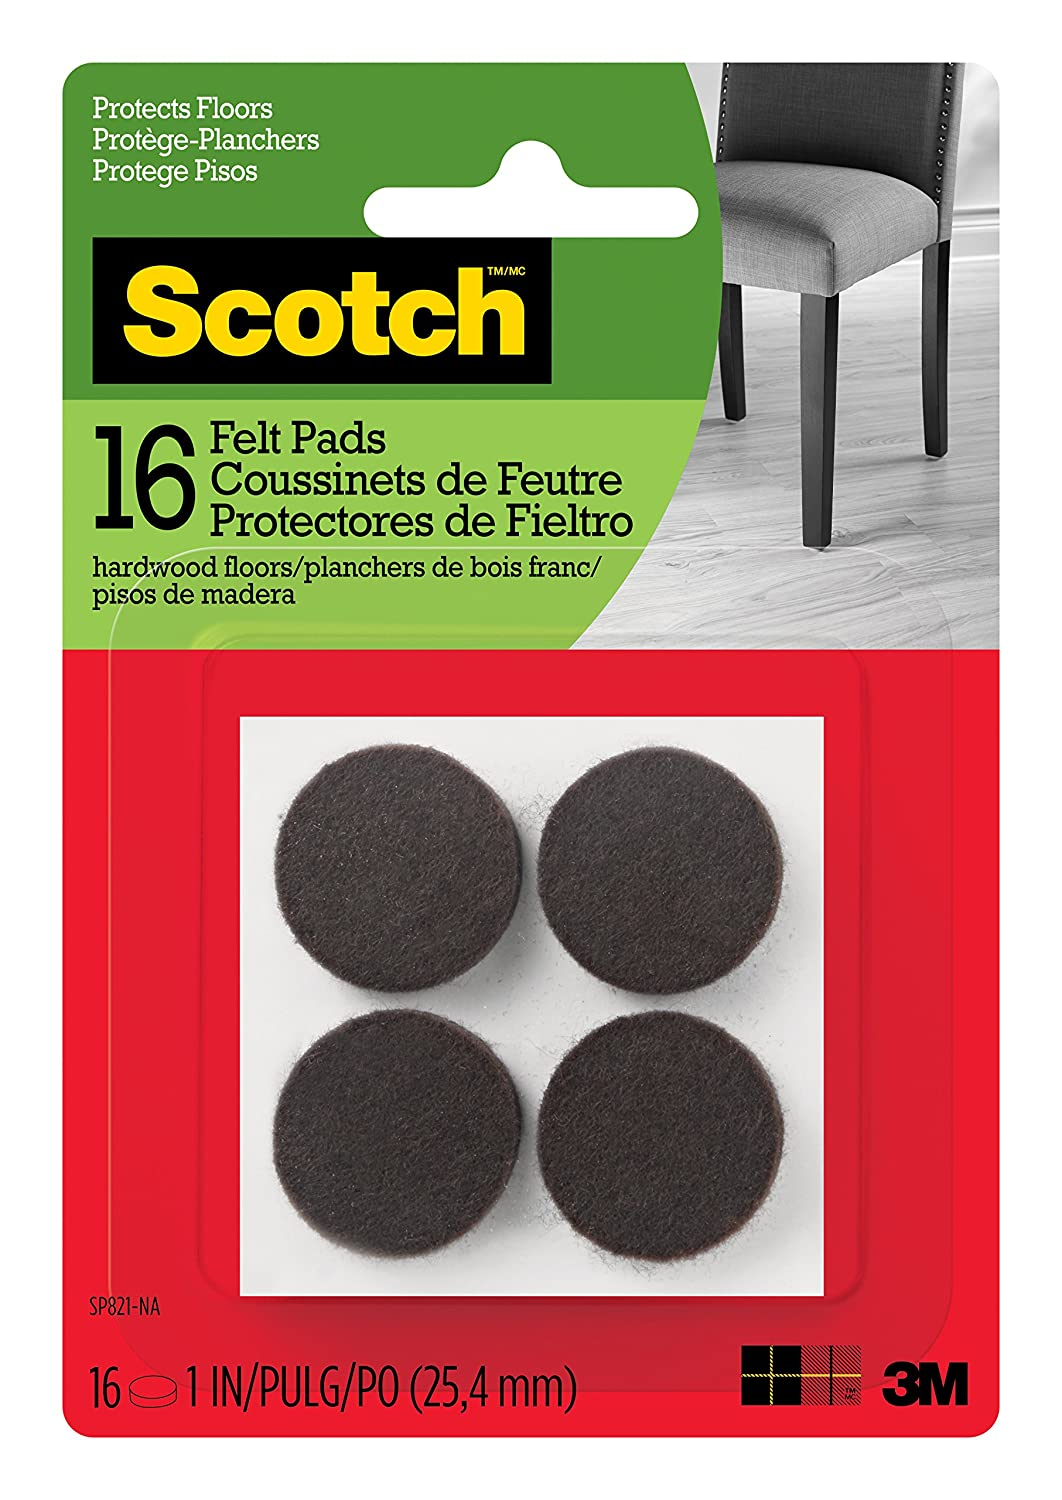 Scotch Brand SP821-NA Scotch Felt Pads Round, 1 in. Diameter, Brown, 16/Pack,